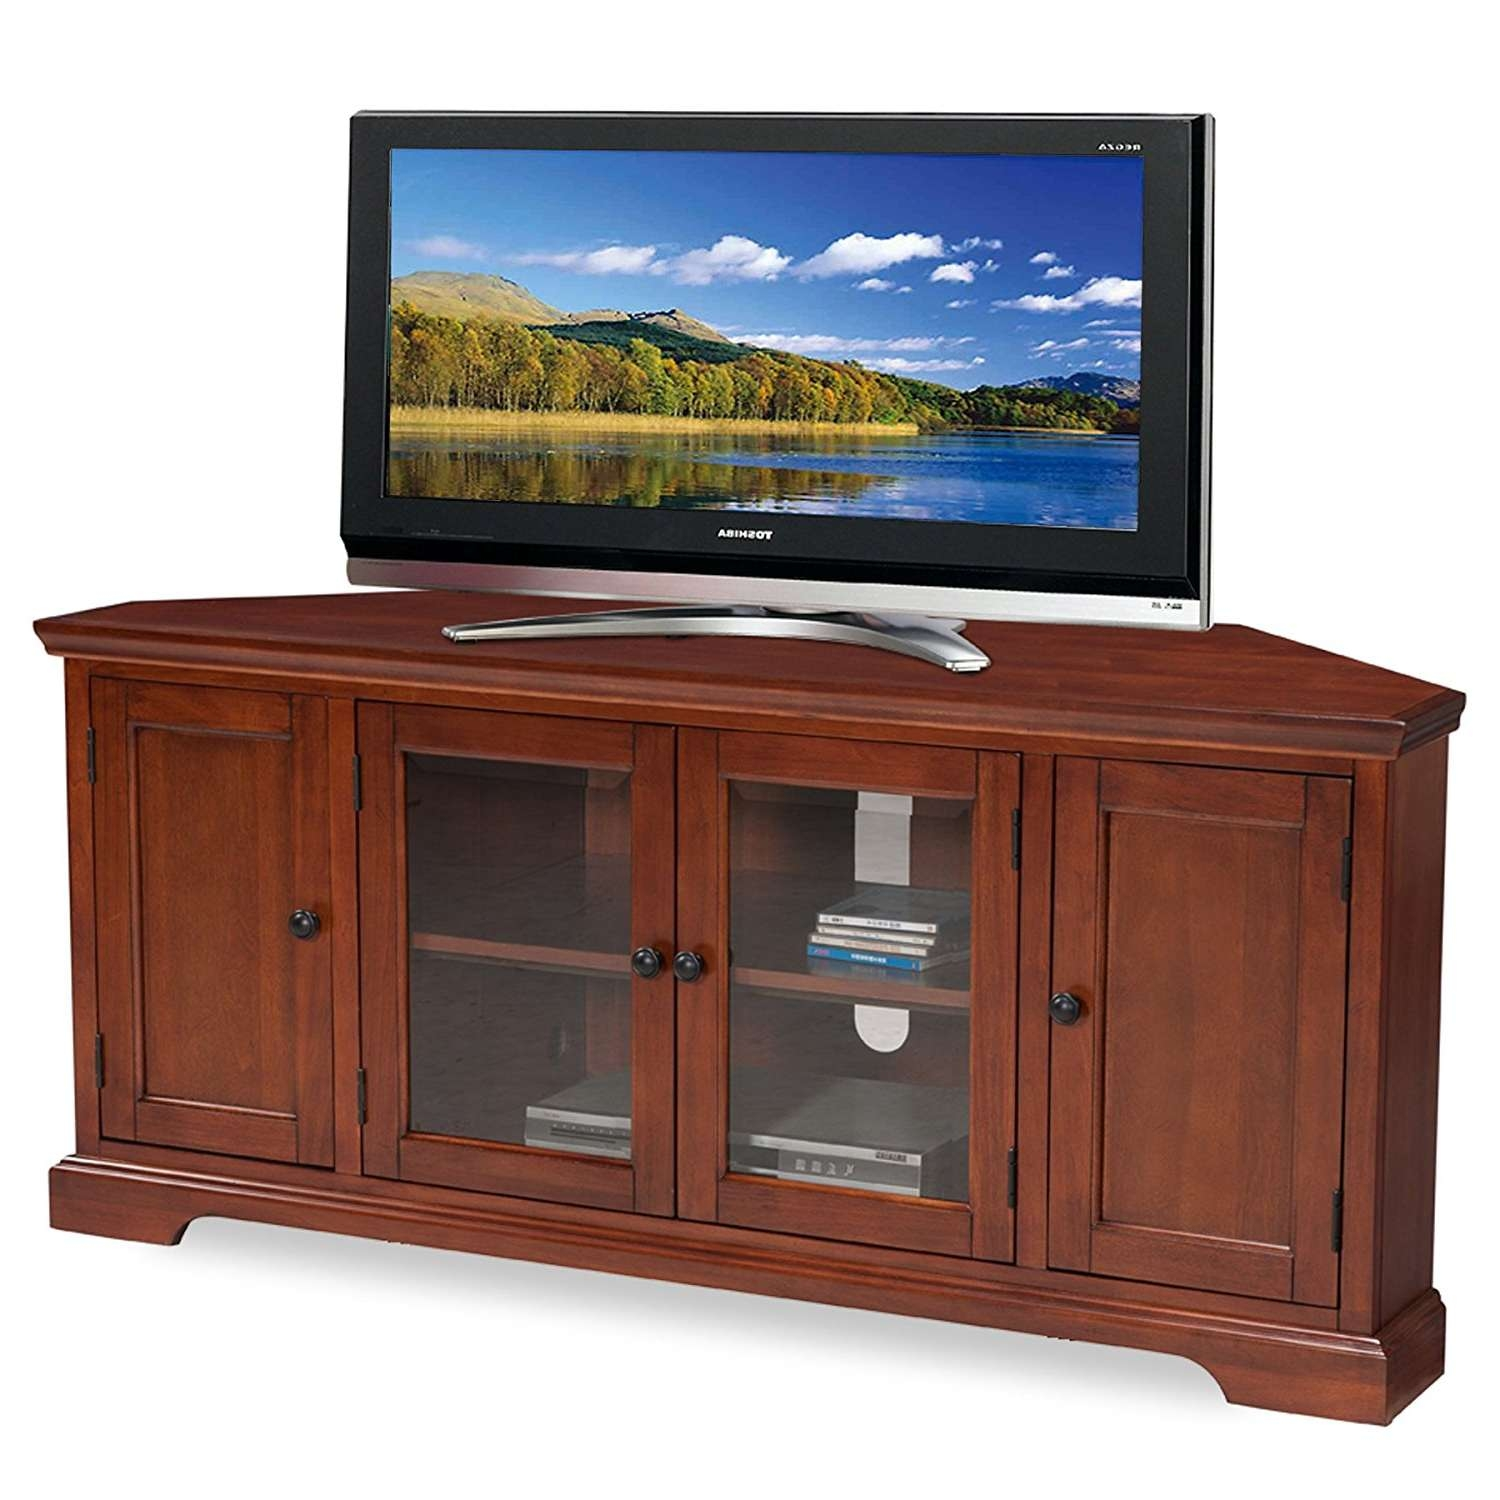 Tremendous Modern Brown Tv Stands Tags : Brown Tv Stands White Inside Wayfair Corner Tv Stands (View 2 of 15)